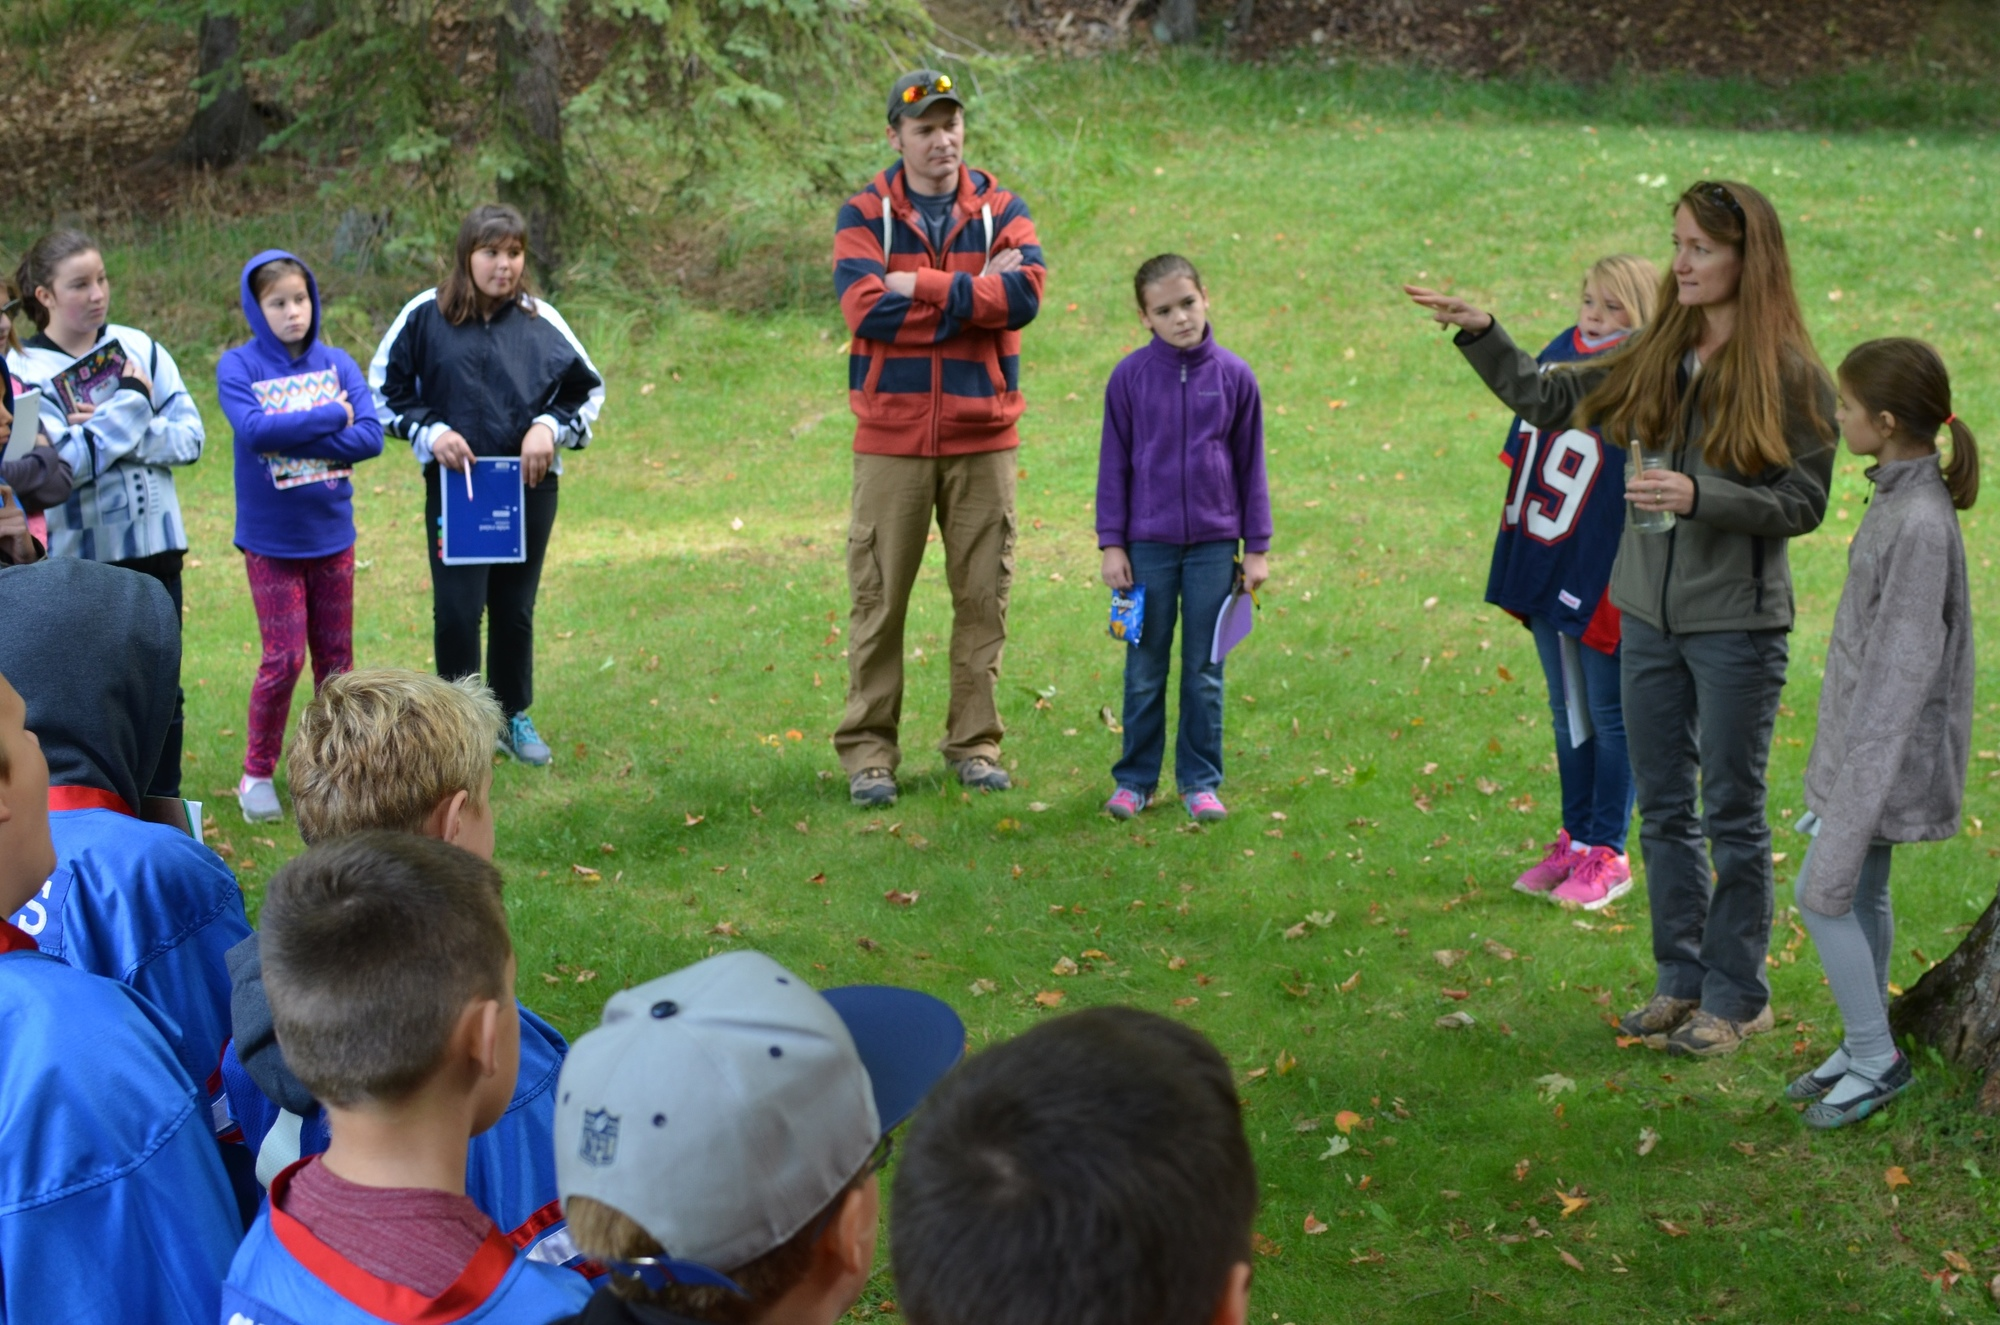 Michelle Miller, an environmental educator, discusses forest products and properties of trees with students at Presque Isle Park in Marquette County.